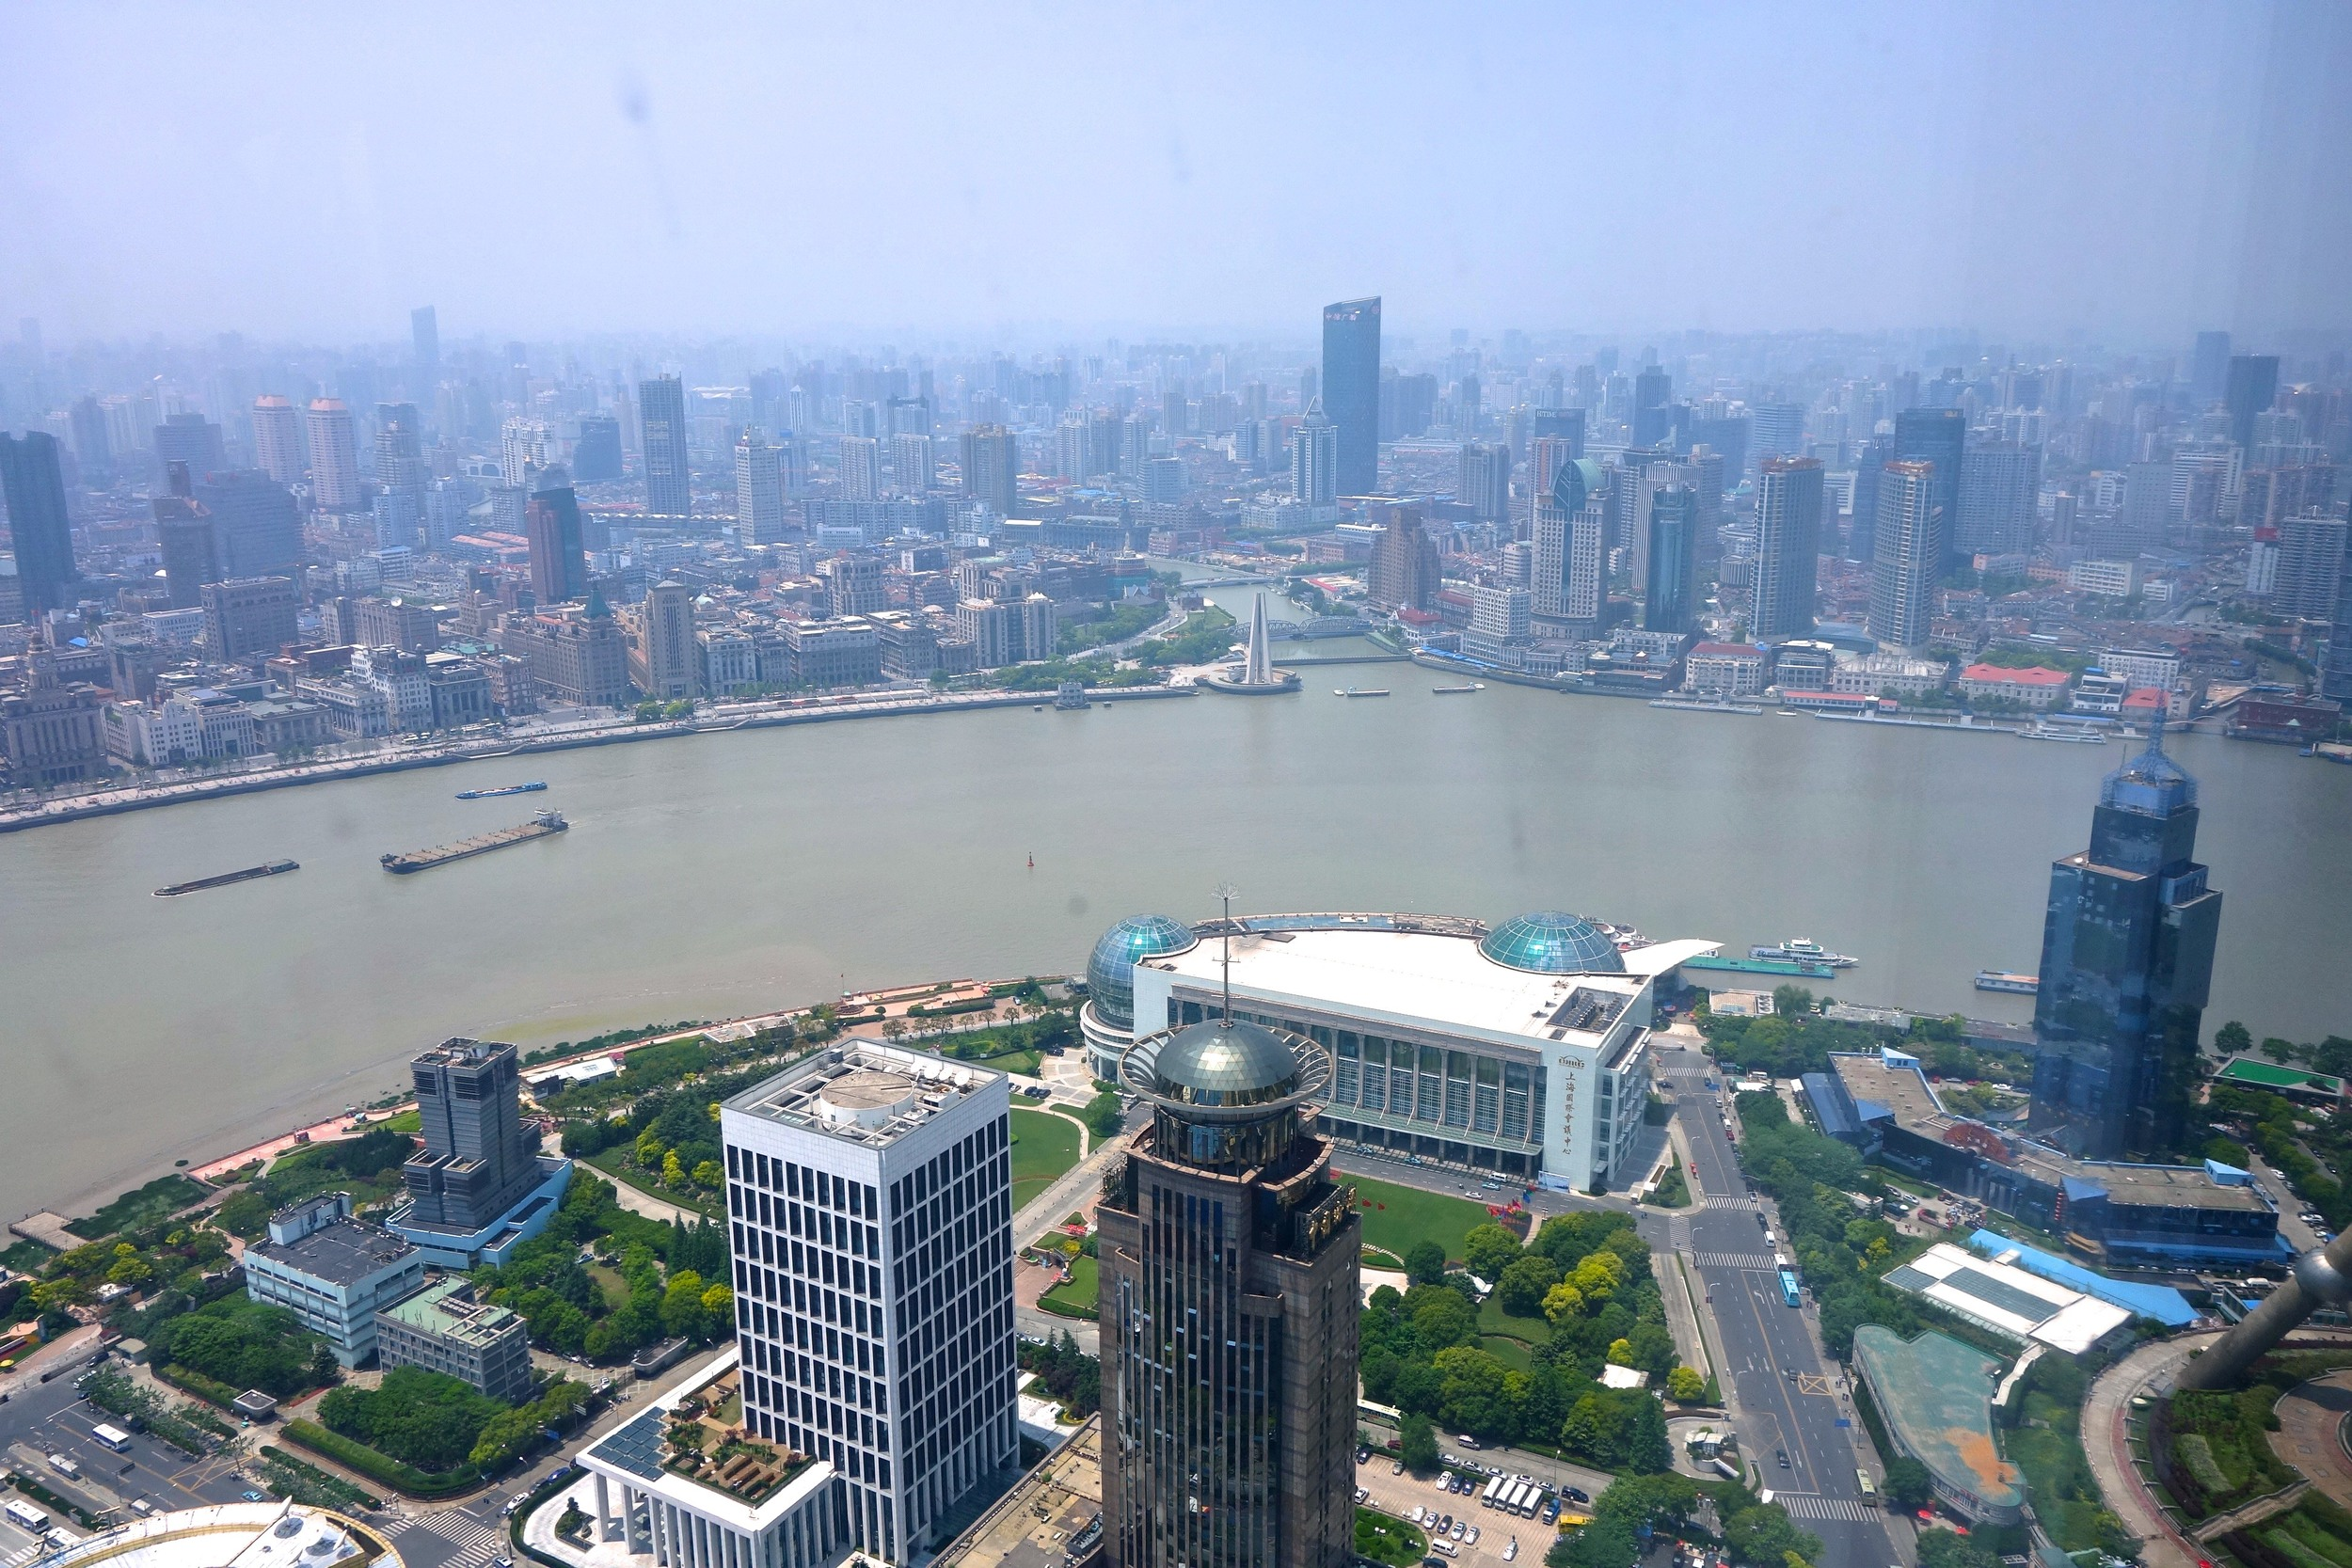 View of the bund and Puxi side from the restaurant